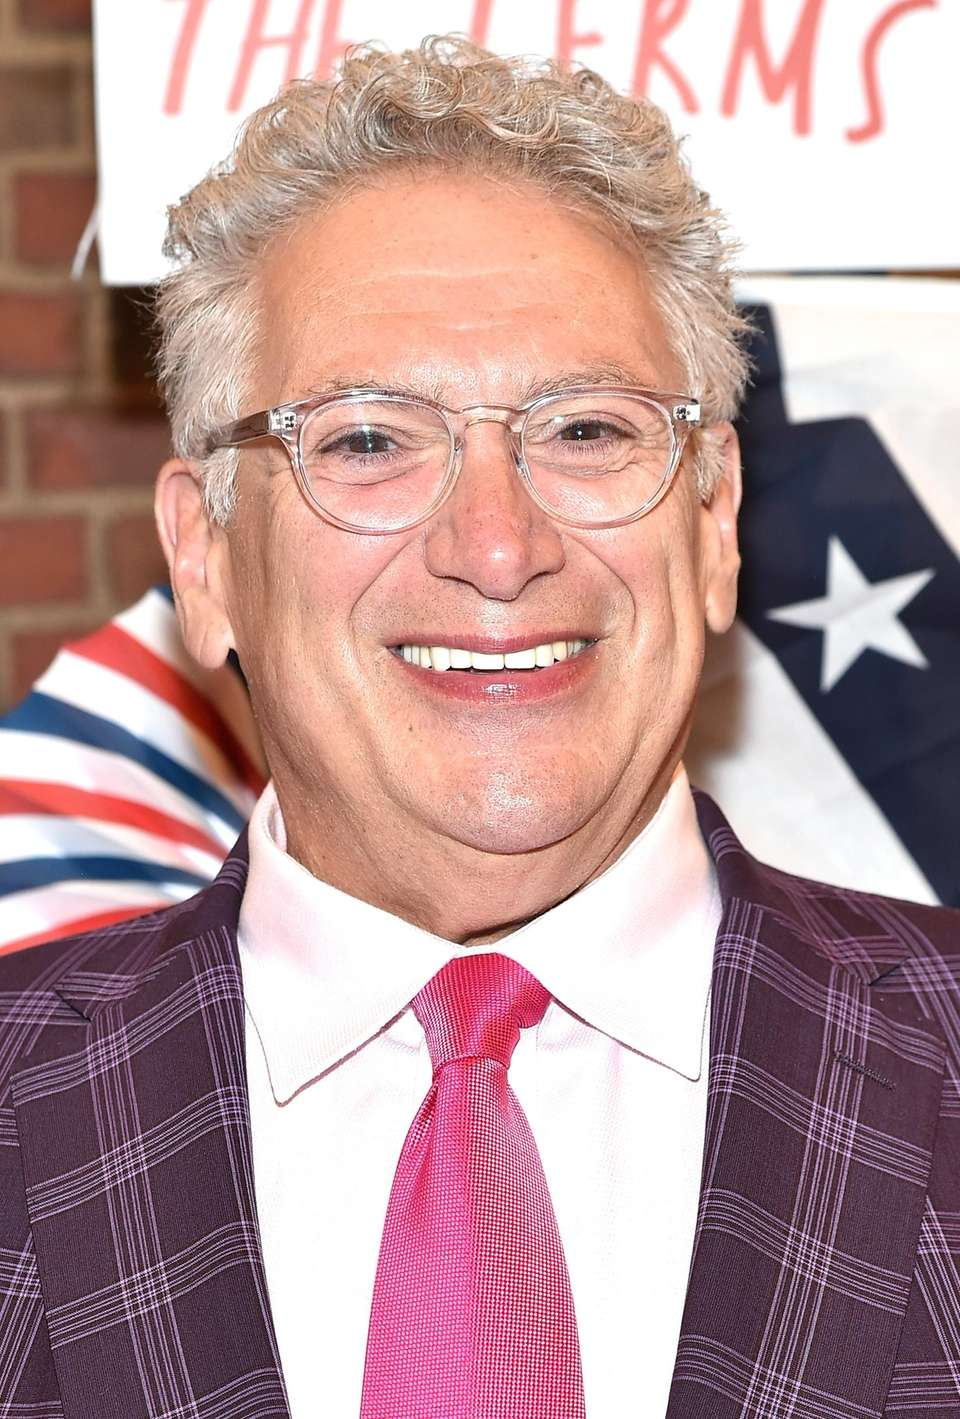 Harvey Fierstein attends the opening night performance of